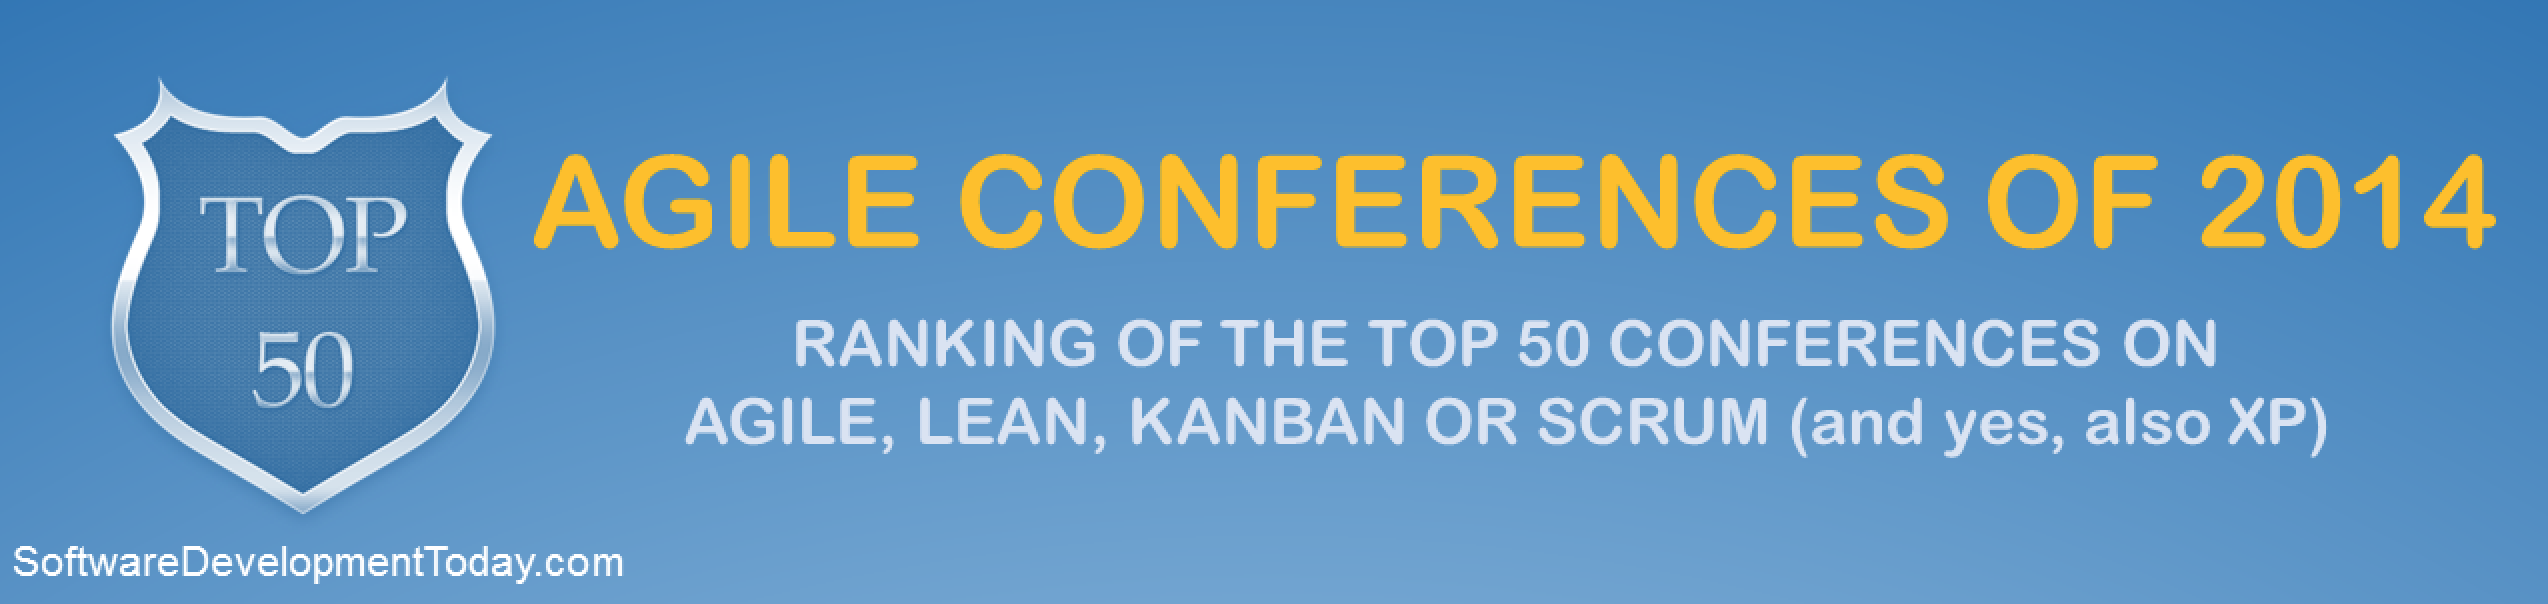 Top 50 Agile Conferences headline banner